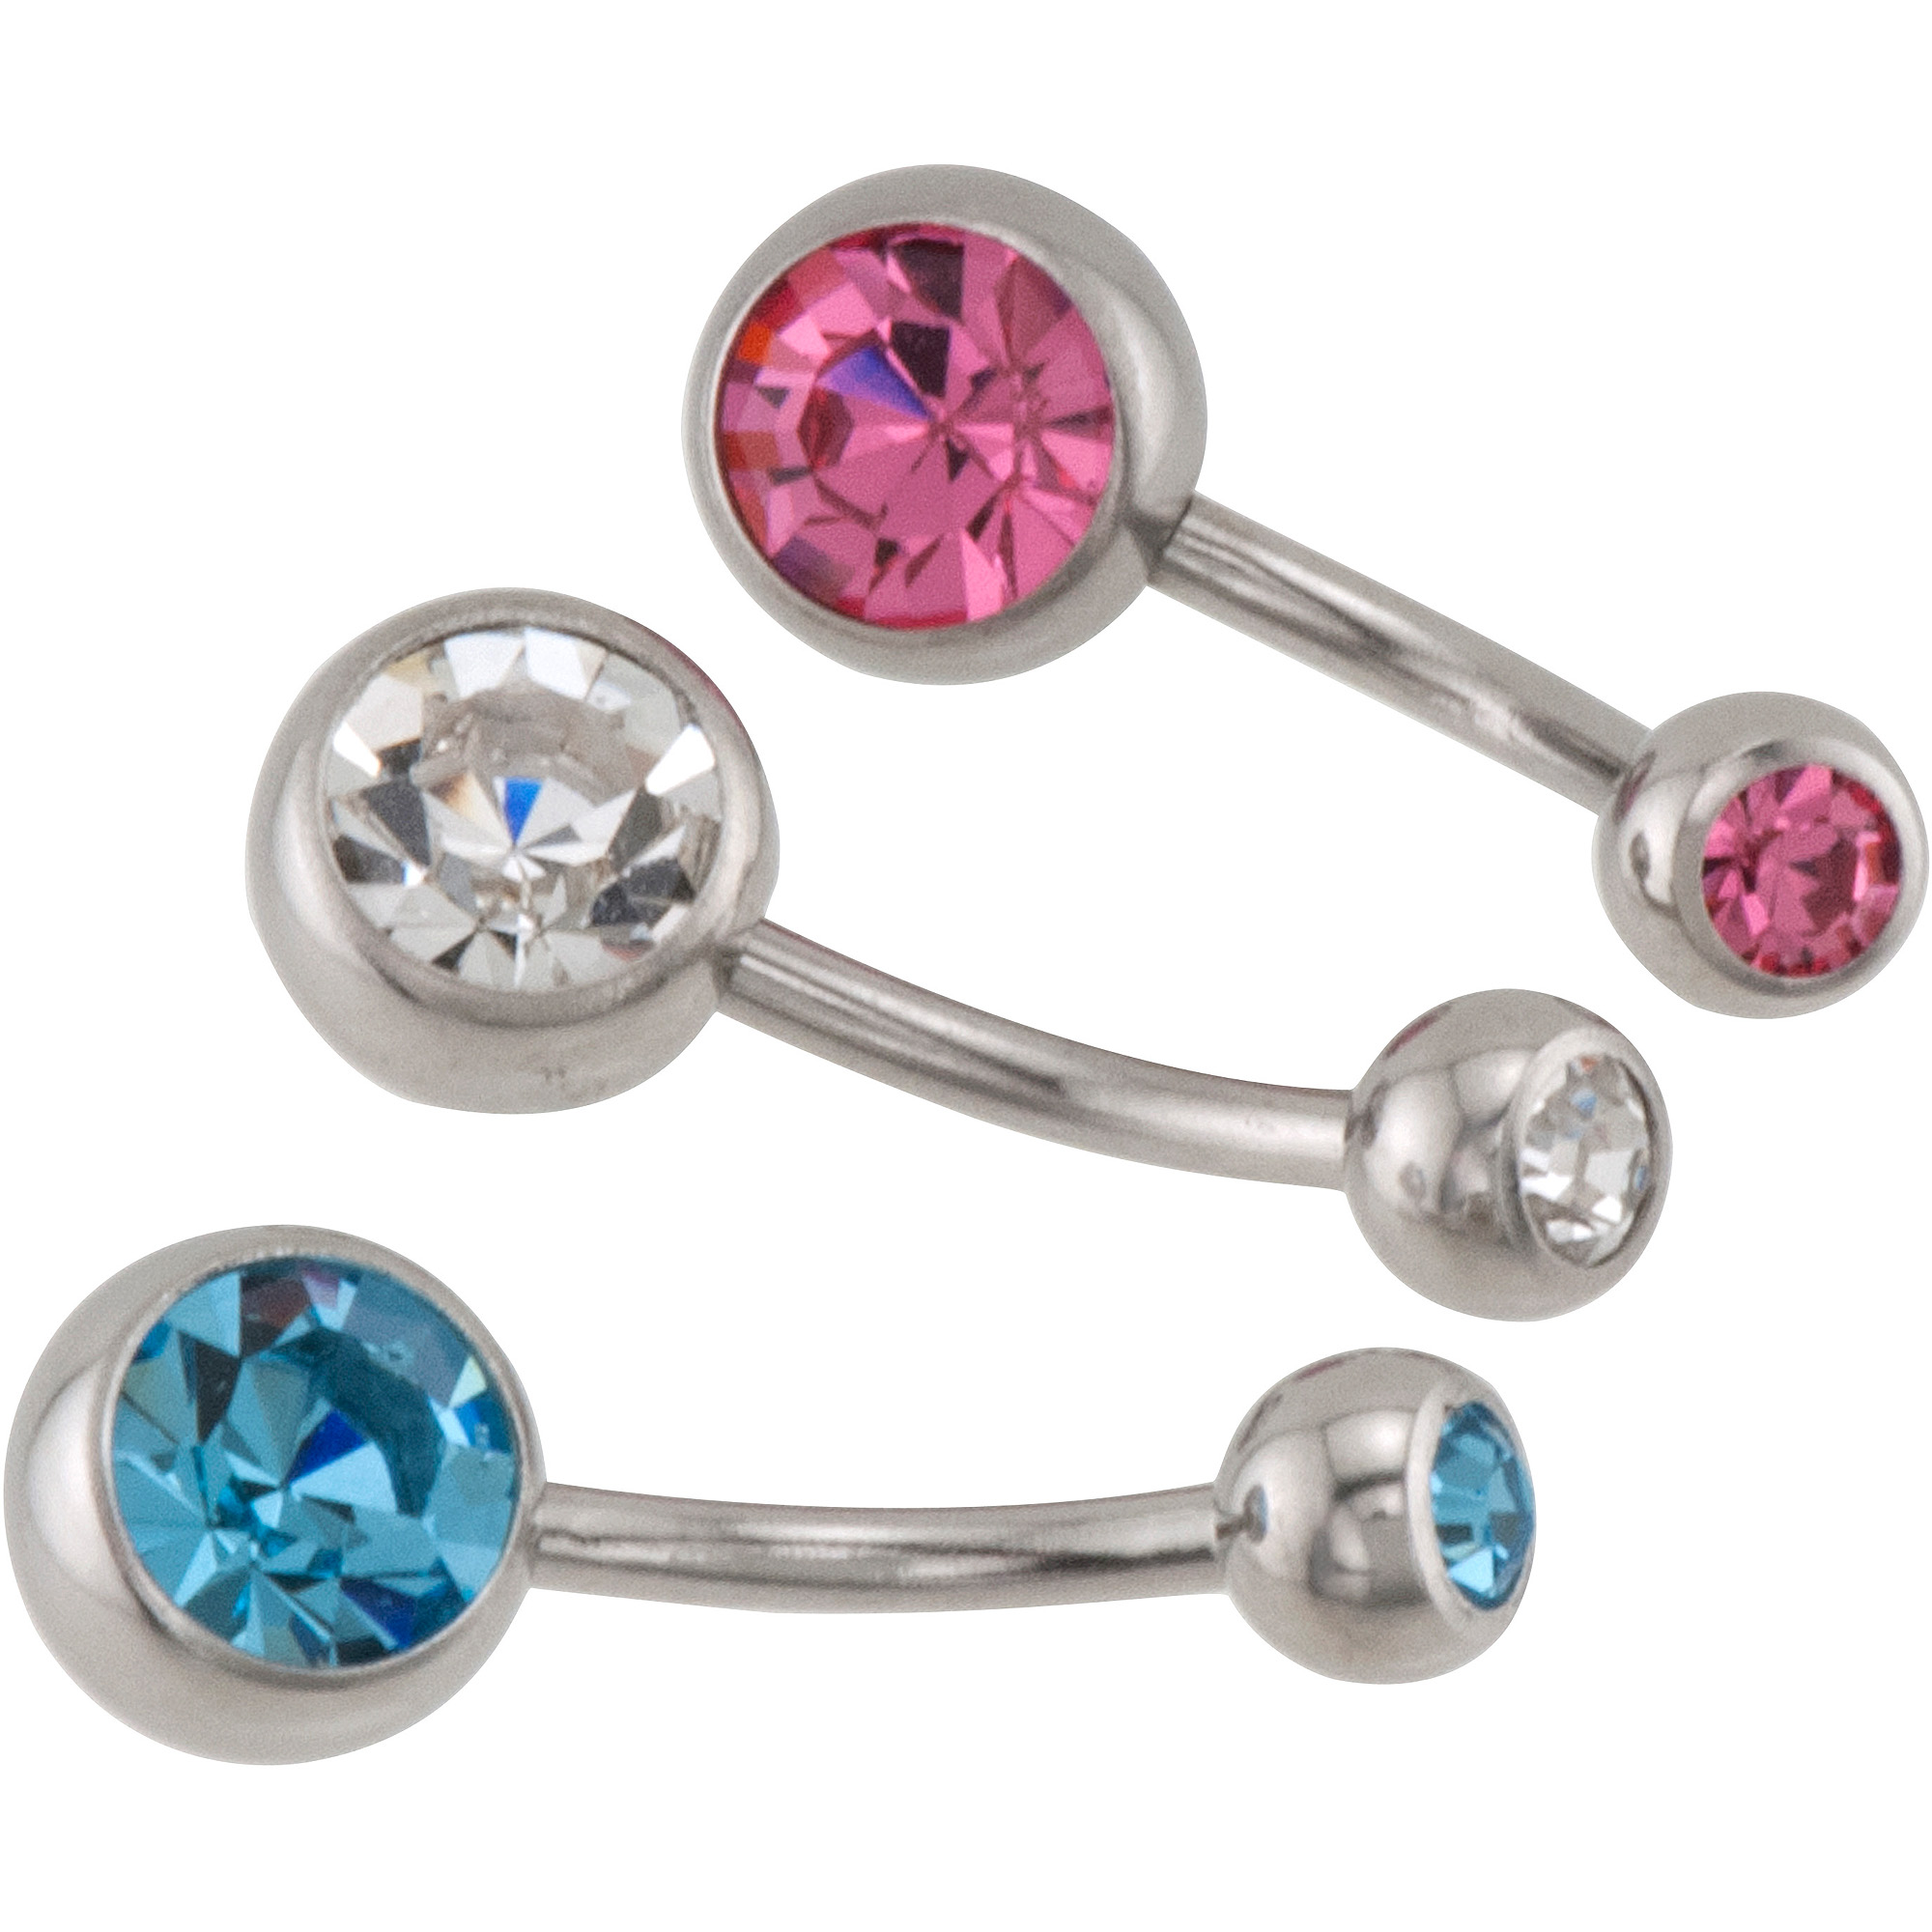 14-Gauge Crystal Belly Rings, 3pk